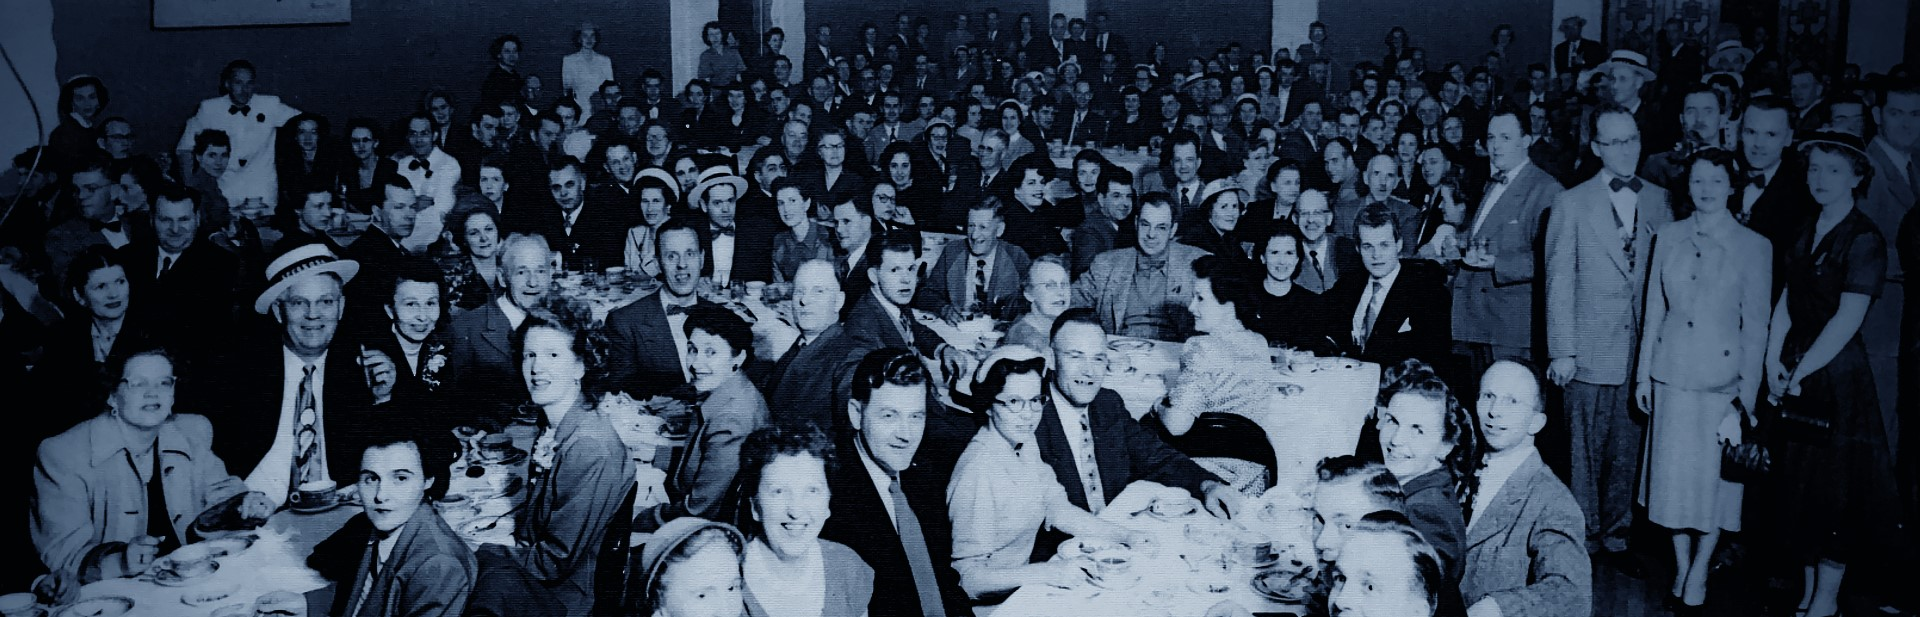 historic image of hvac convention dinner party in 1952